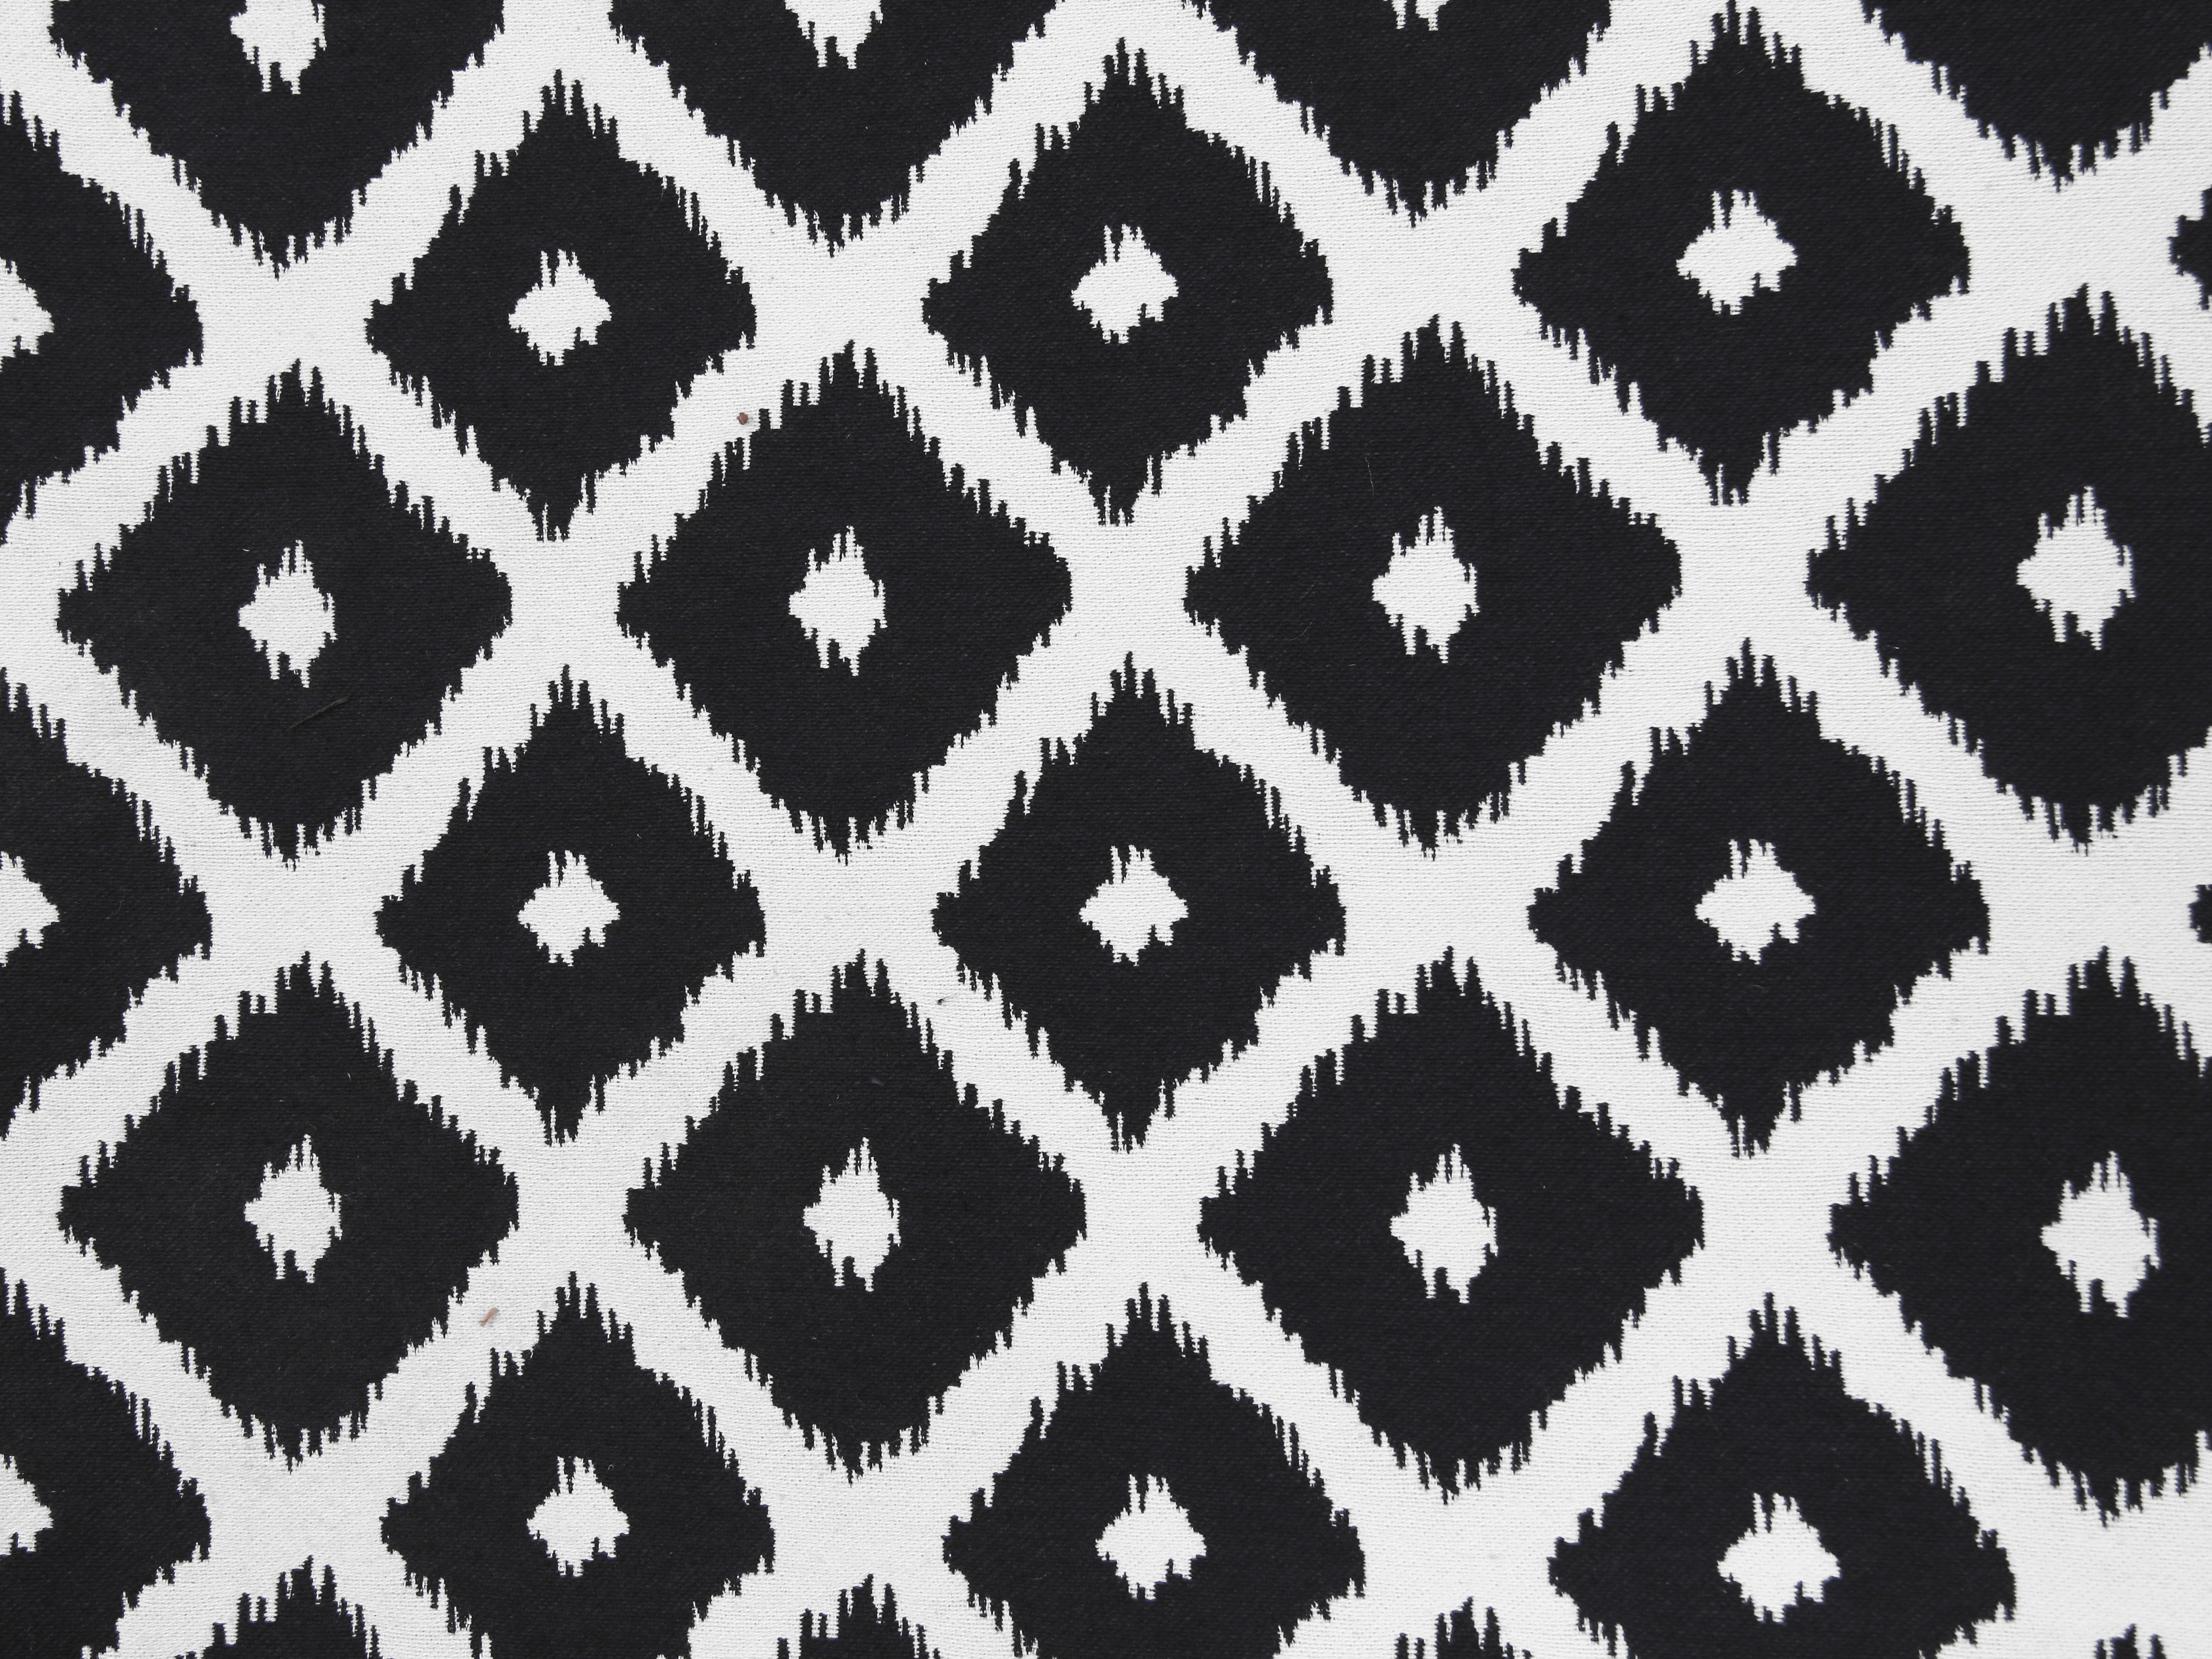 fabric texture black white decor pattern vintage cloth wallpaper 4608x3456